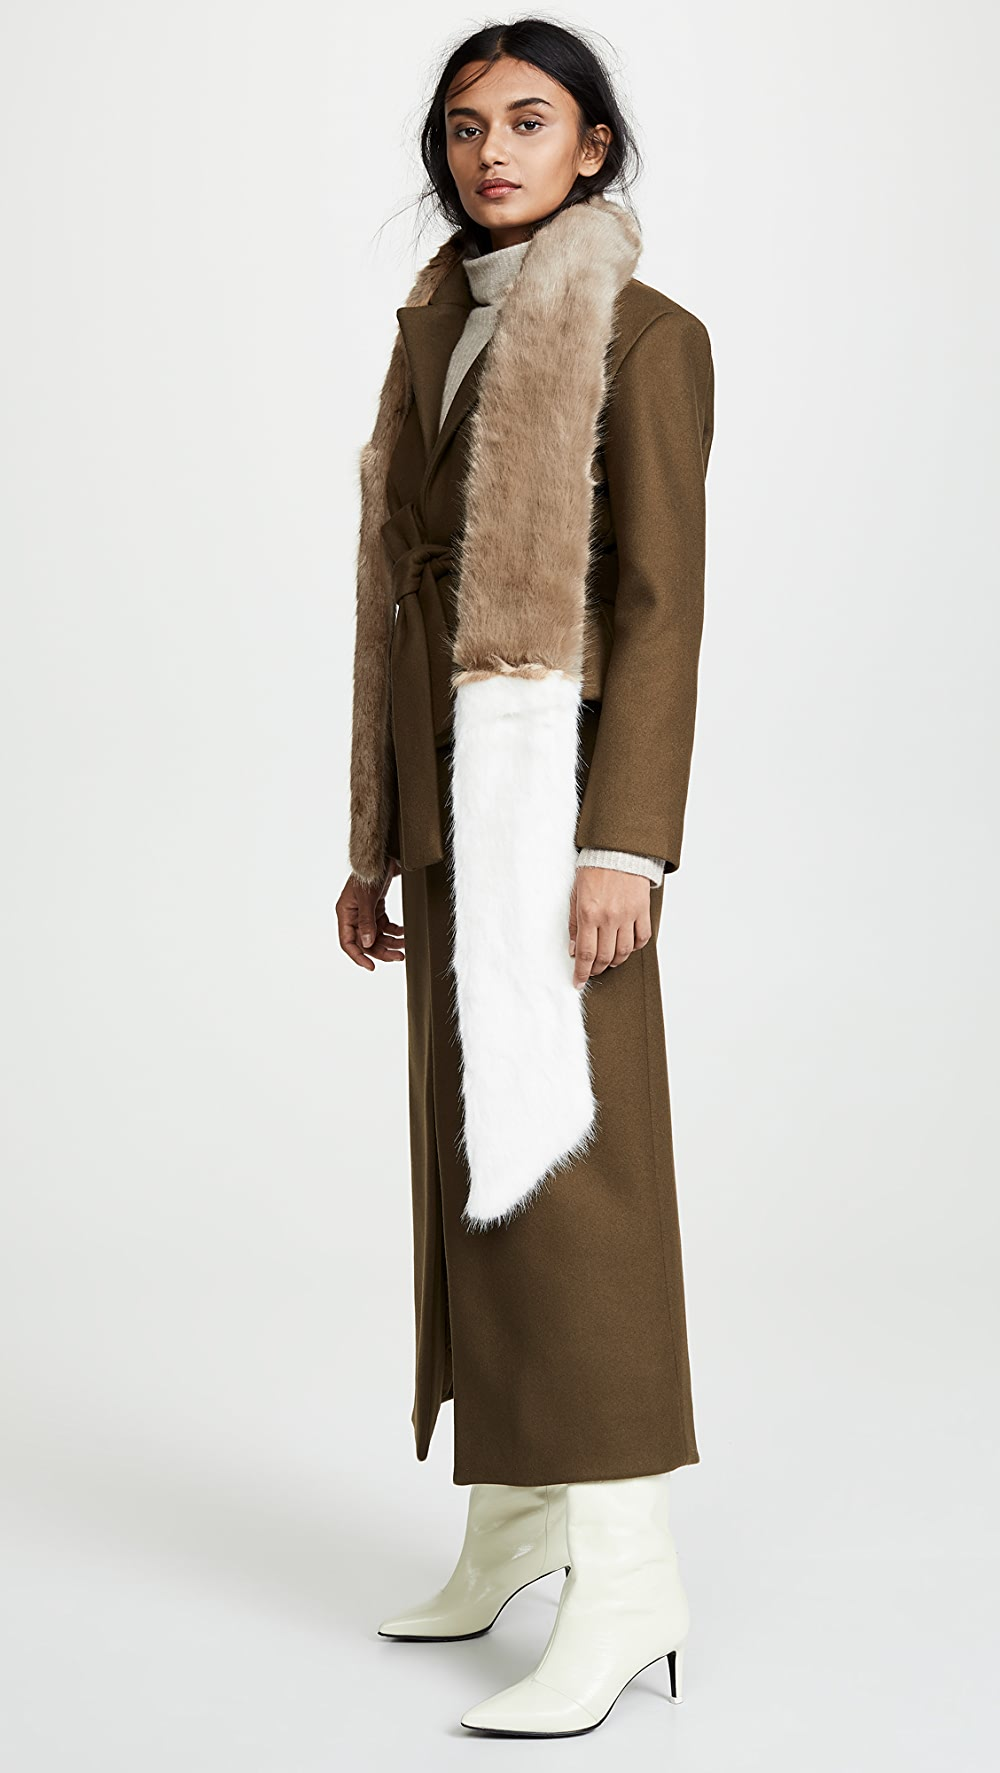 Amiable Heurueh - Long & Skinny Faux Fur Scarf And Digestion Helping